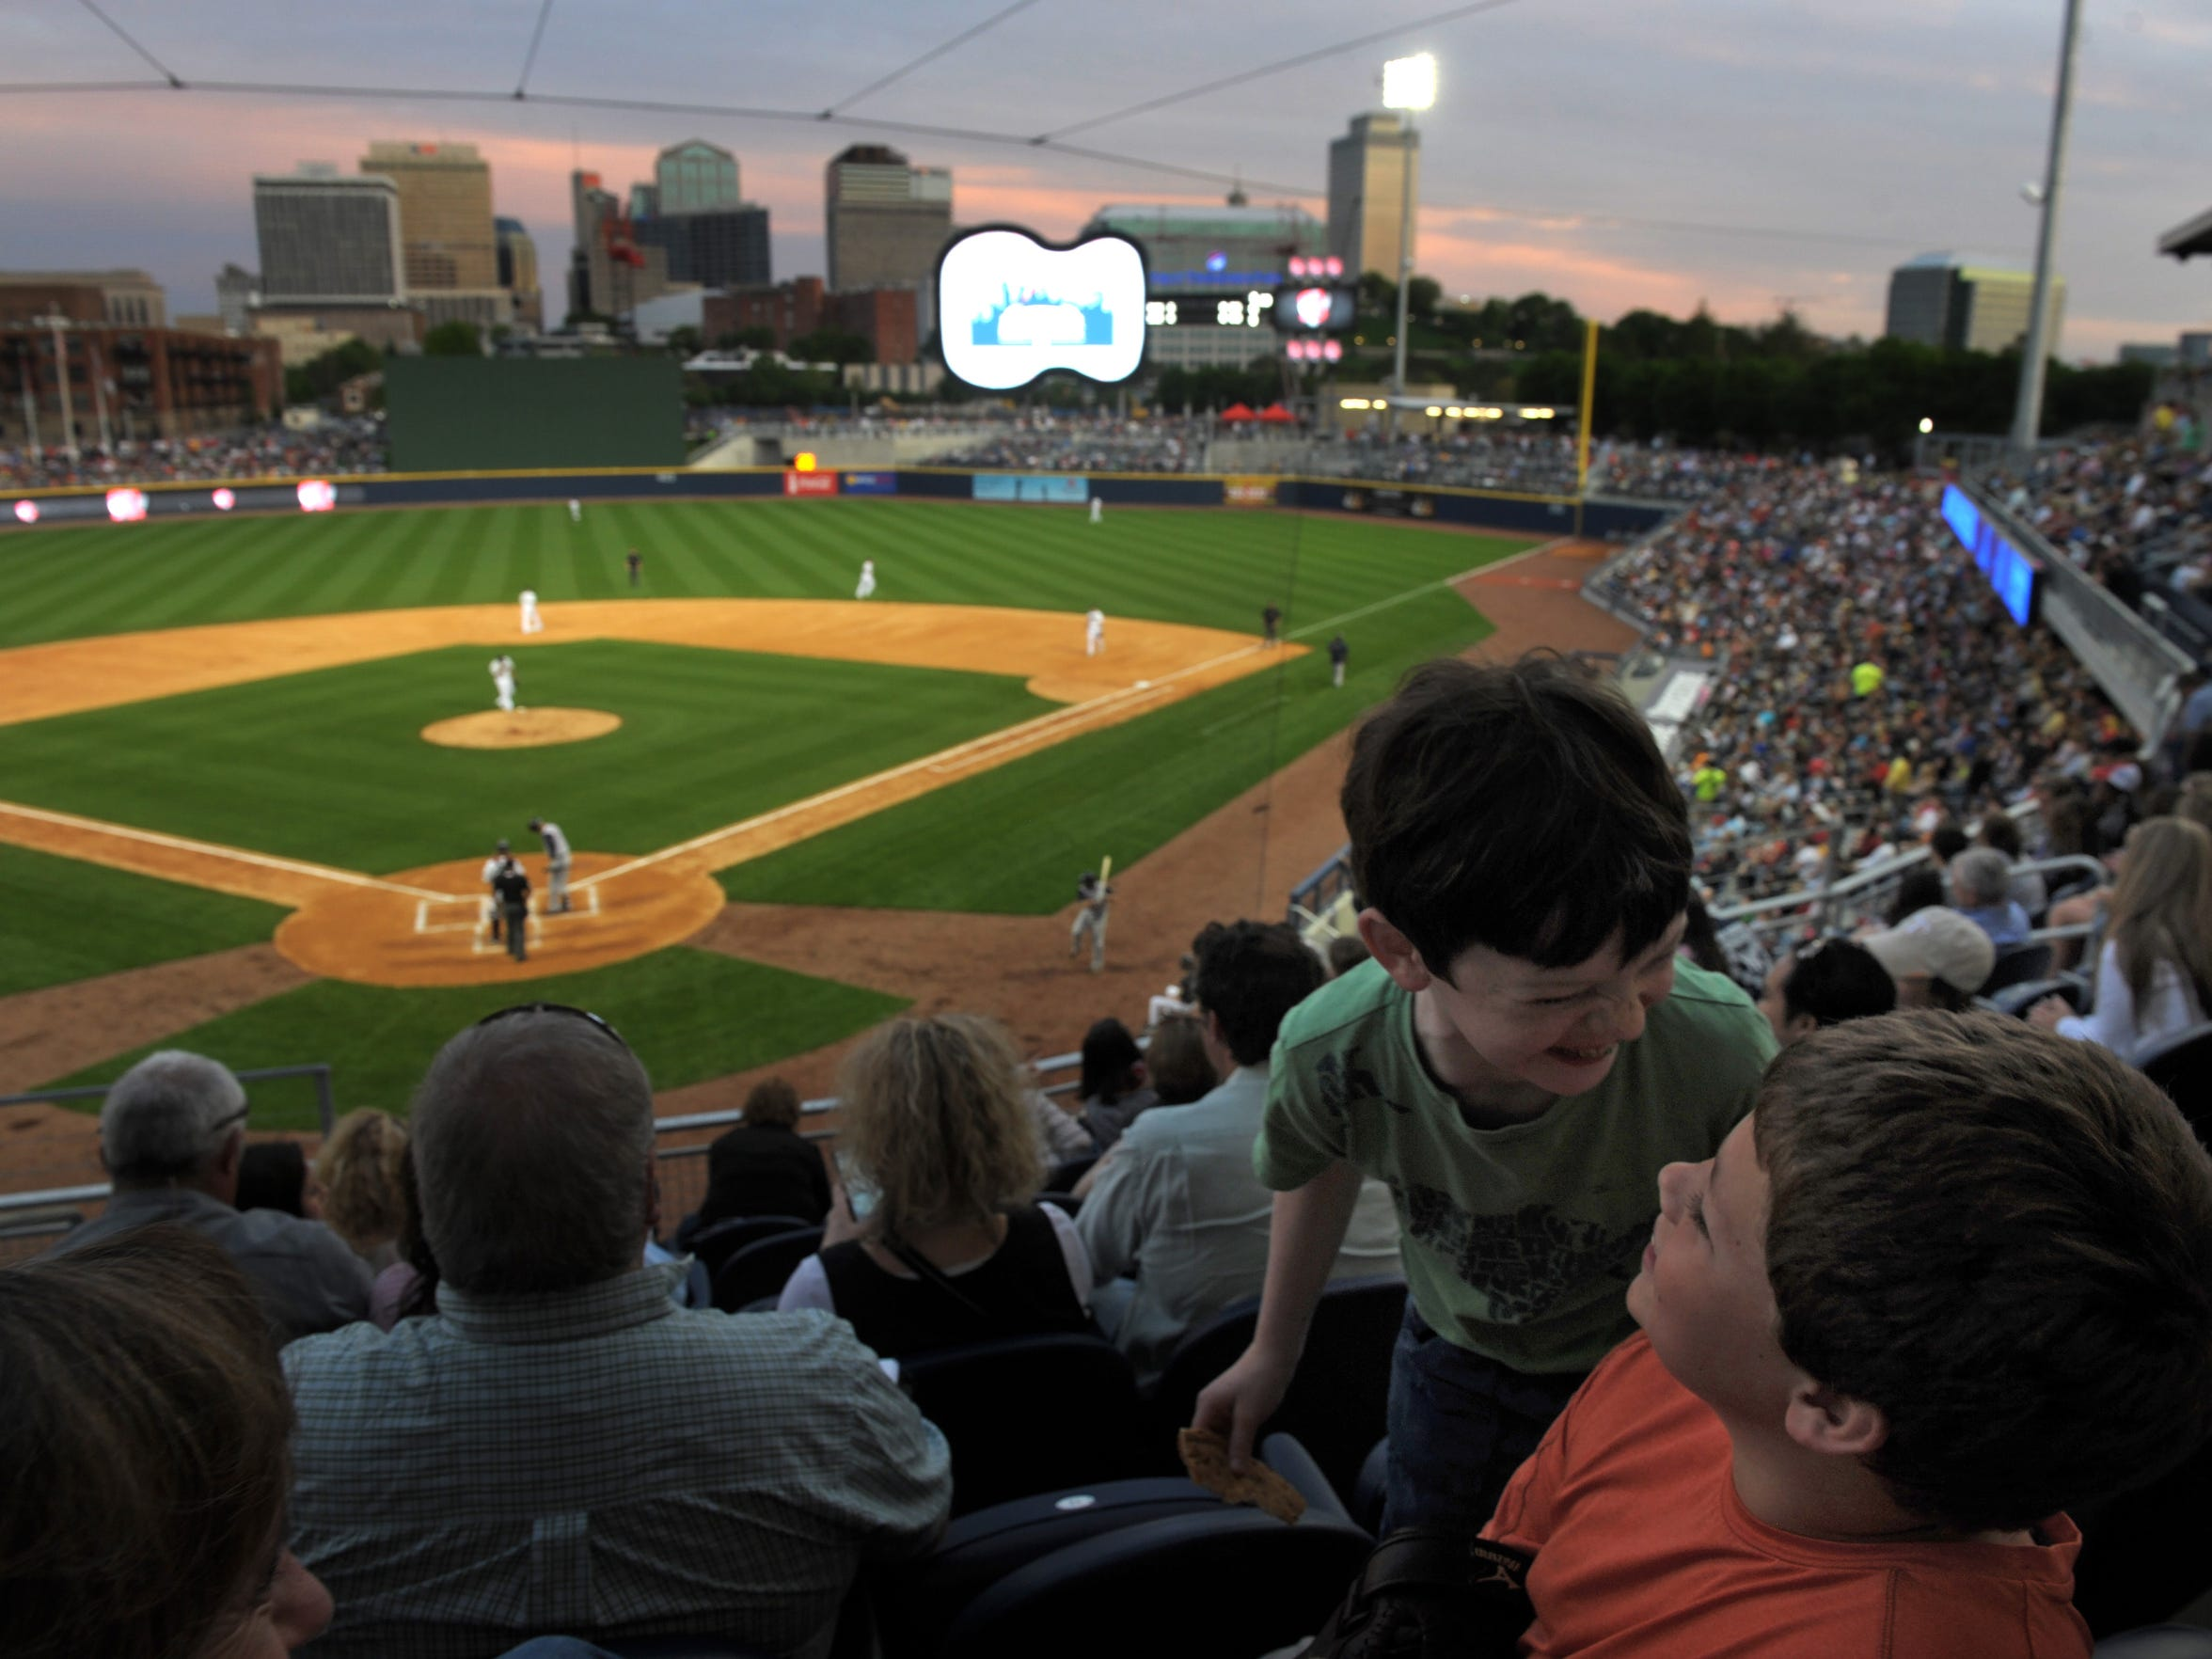 Friends Frank Hancock, 10, and Alex Humphrey, 11, have gone to all the past Sounds game but were celebrating opening day First Tennessee Park on Friday April 17, 2015, in Nashville in Tenn.